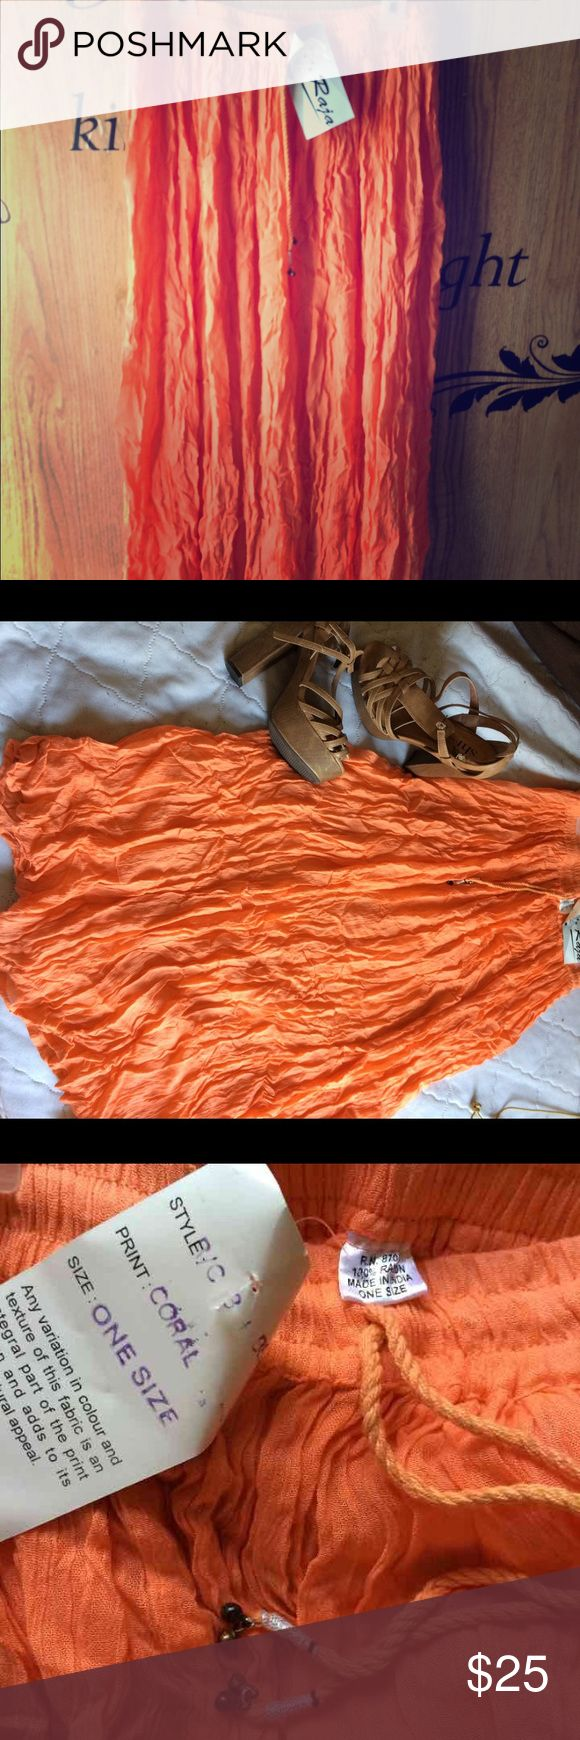 NWT flowy boho coral skirt size OS NWT flowy boho coral skirt size OS has elastic waist with adjustable ties! By Raja. Any questions just ask👇🏼 MAKE AN OFFER❣ BUNDLE & SAVE❣ FAST SHIPPING 📦‼️ Raja Skirts Maxi